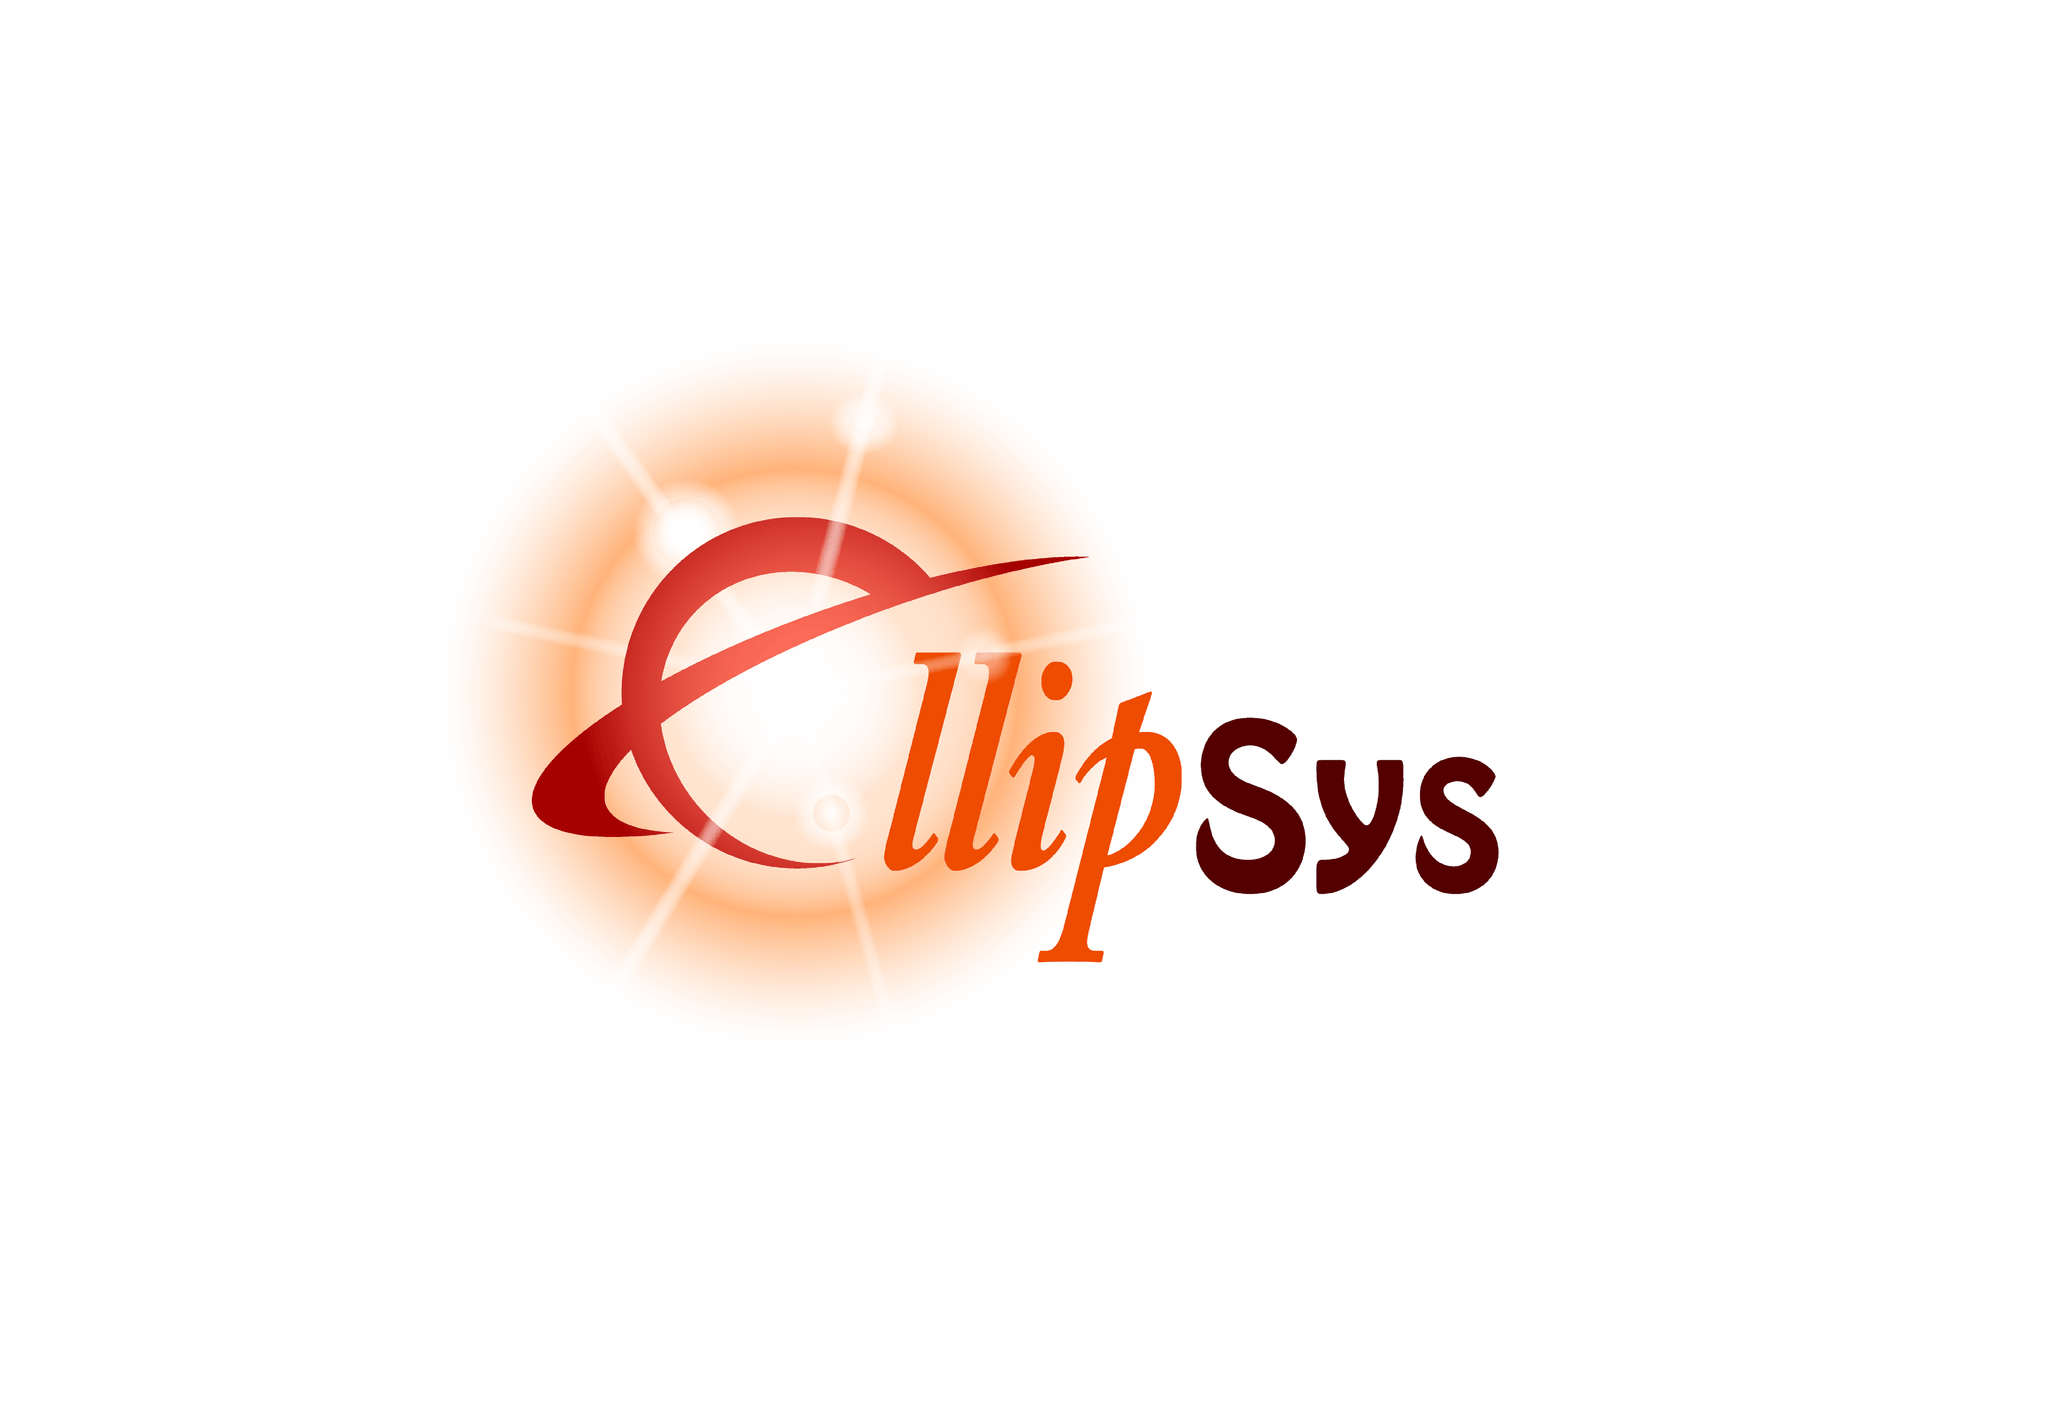 Ellipsys